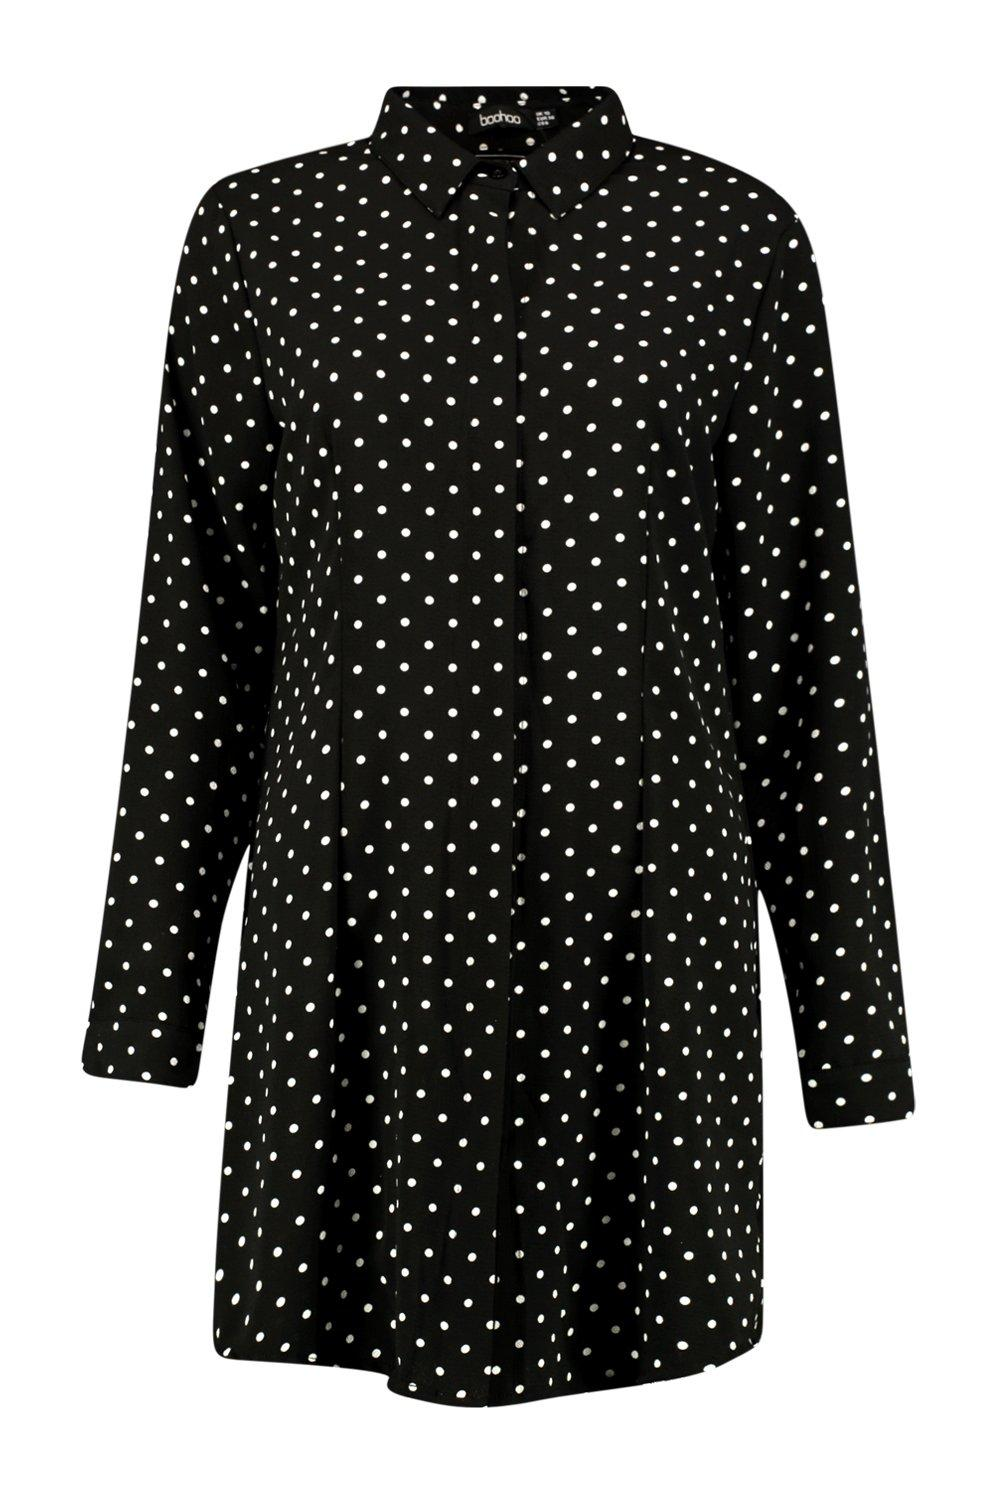 Barley Polka Dot Shirt Dress at boohoo.com